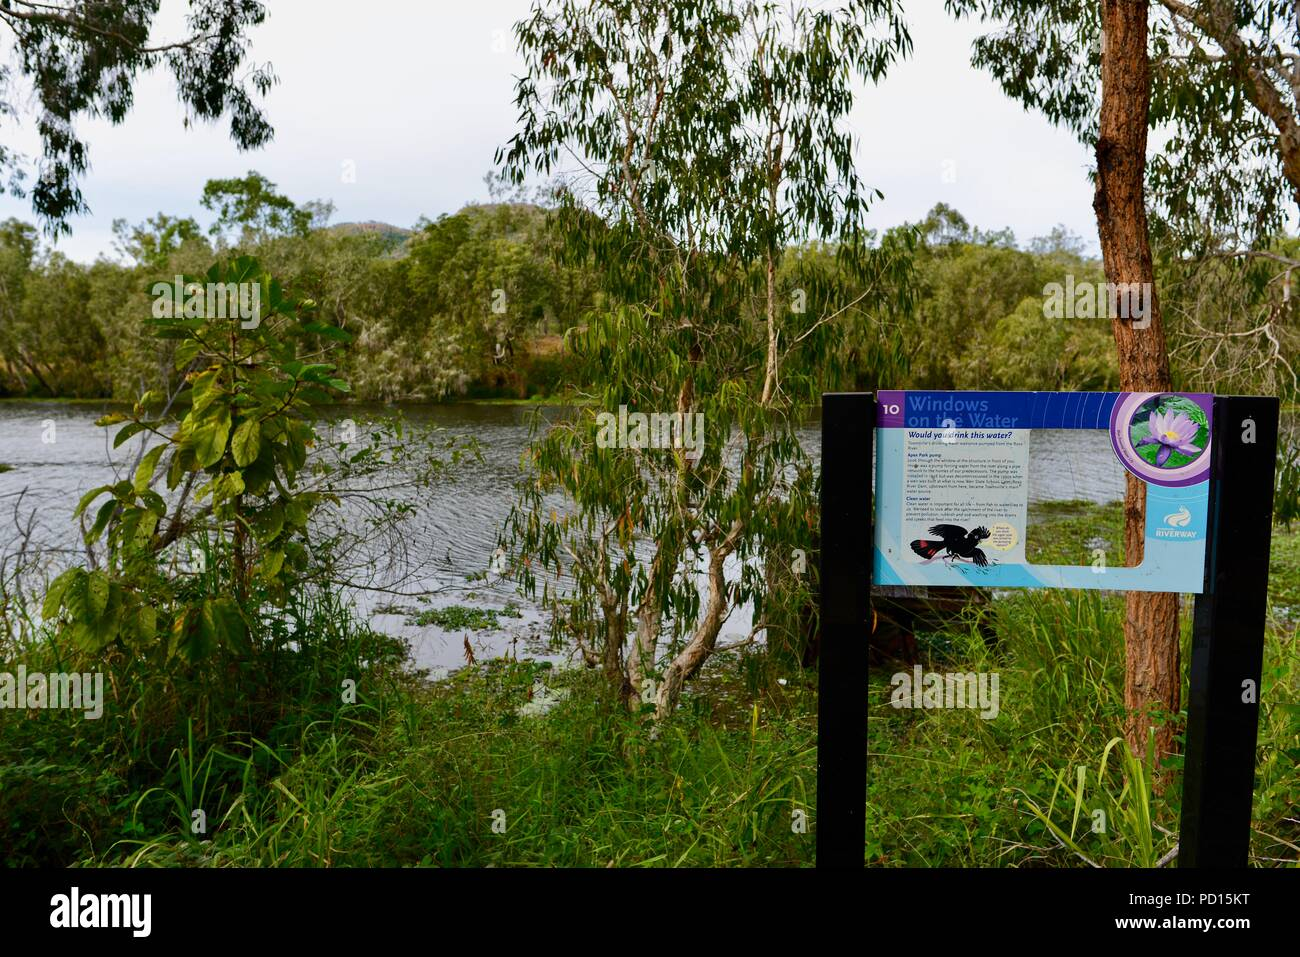 Windows on the water sign, Booroona walking trail on the Ross River, Rasmussen QLD 4815, Australia Stock Photo